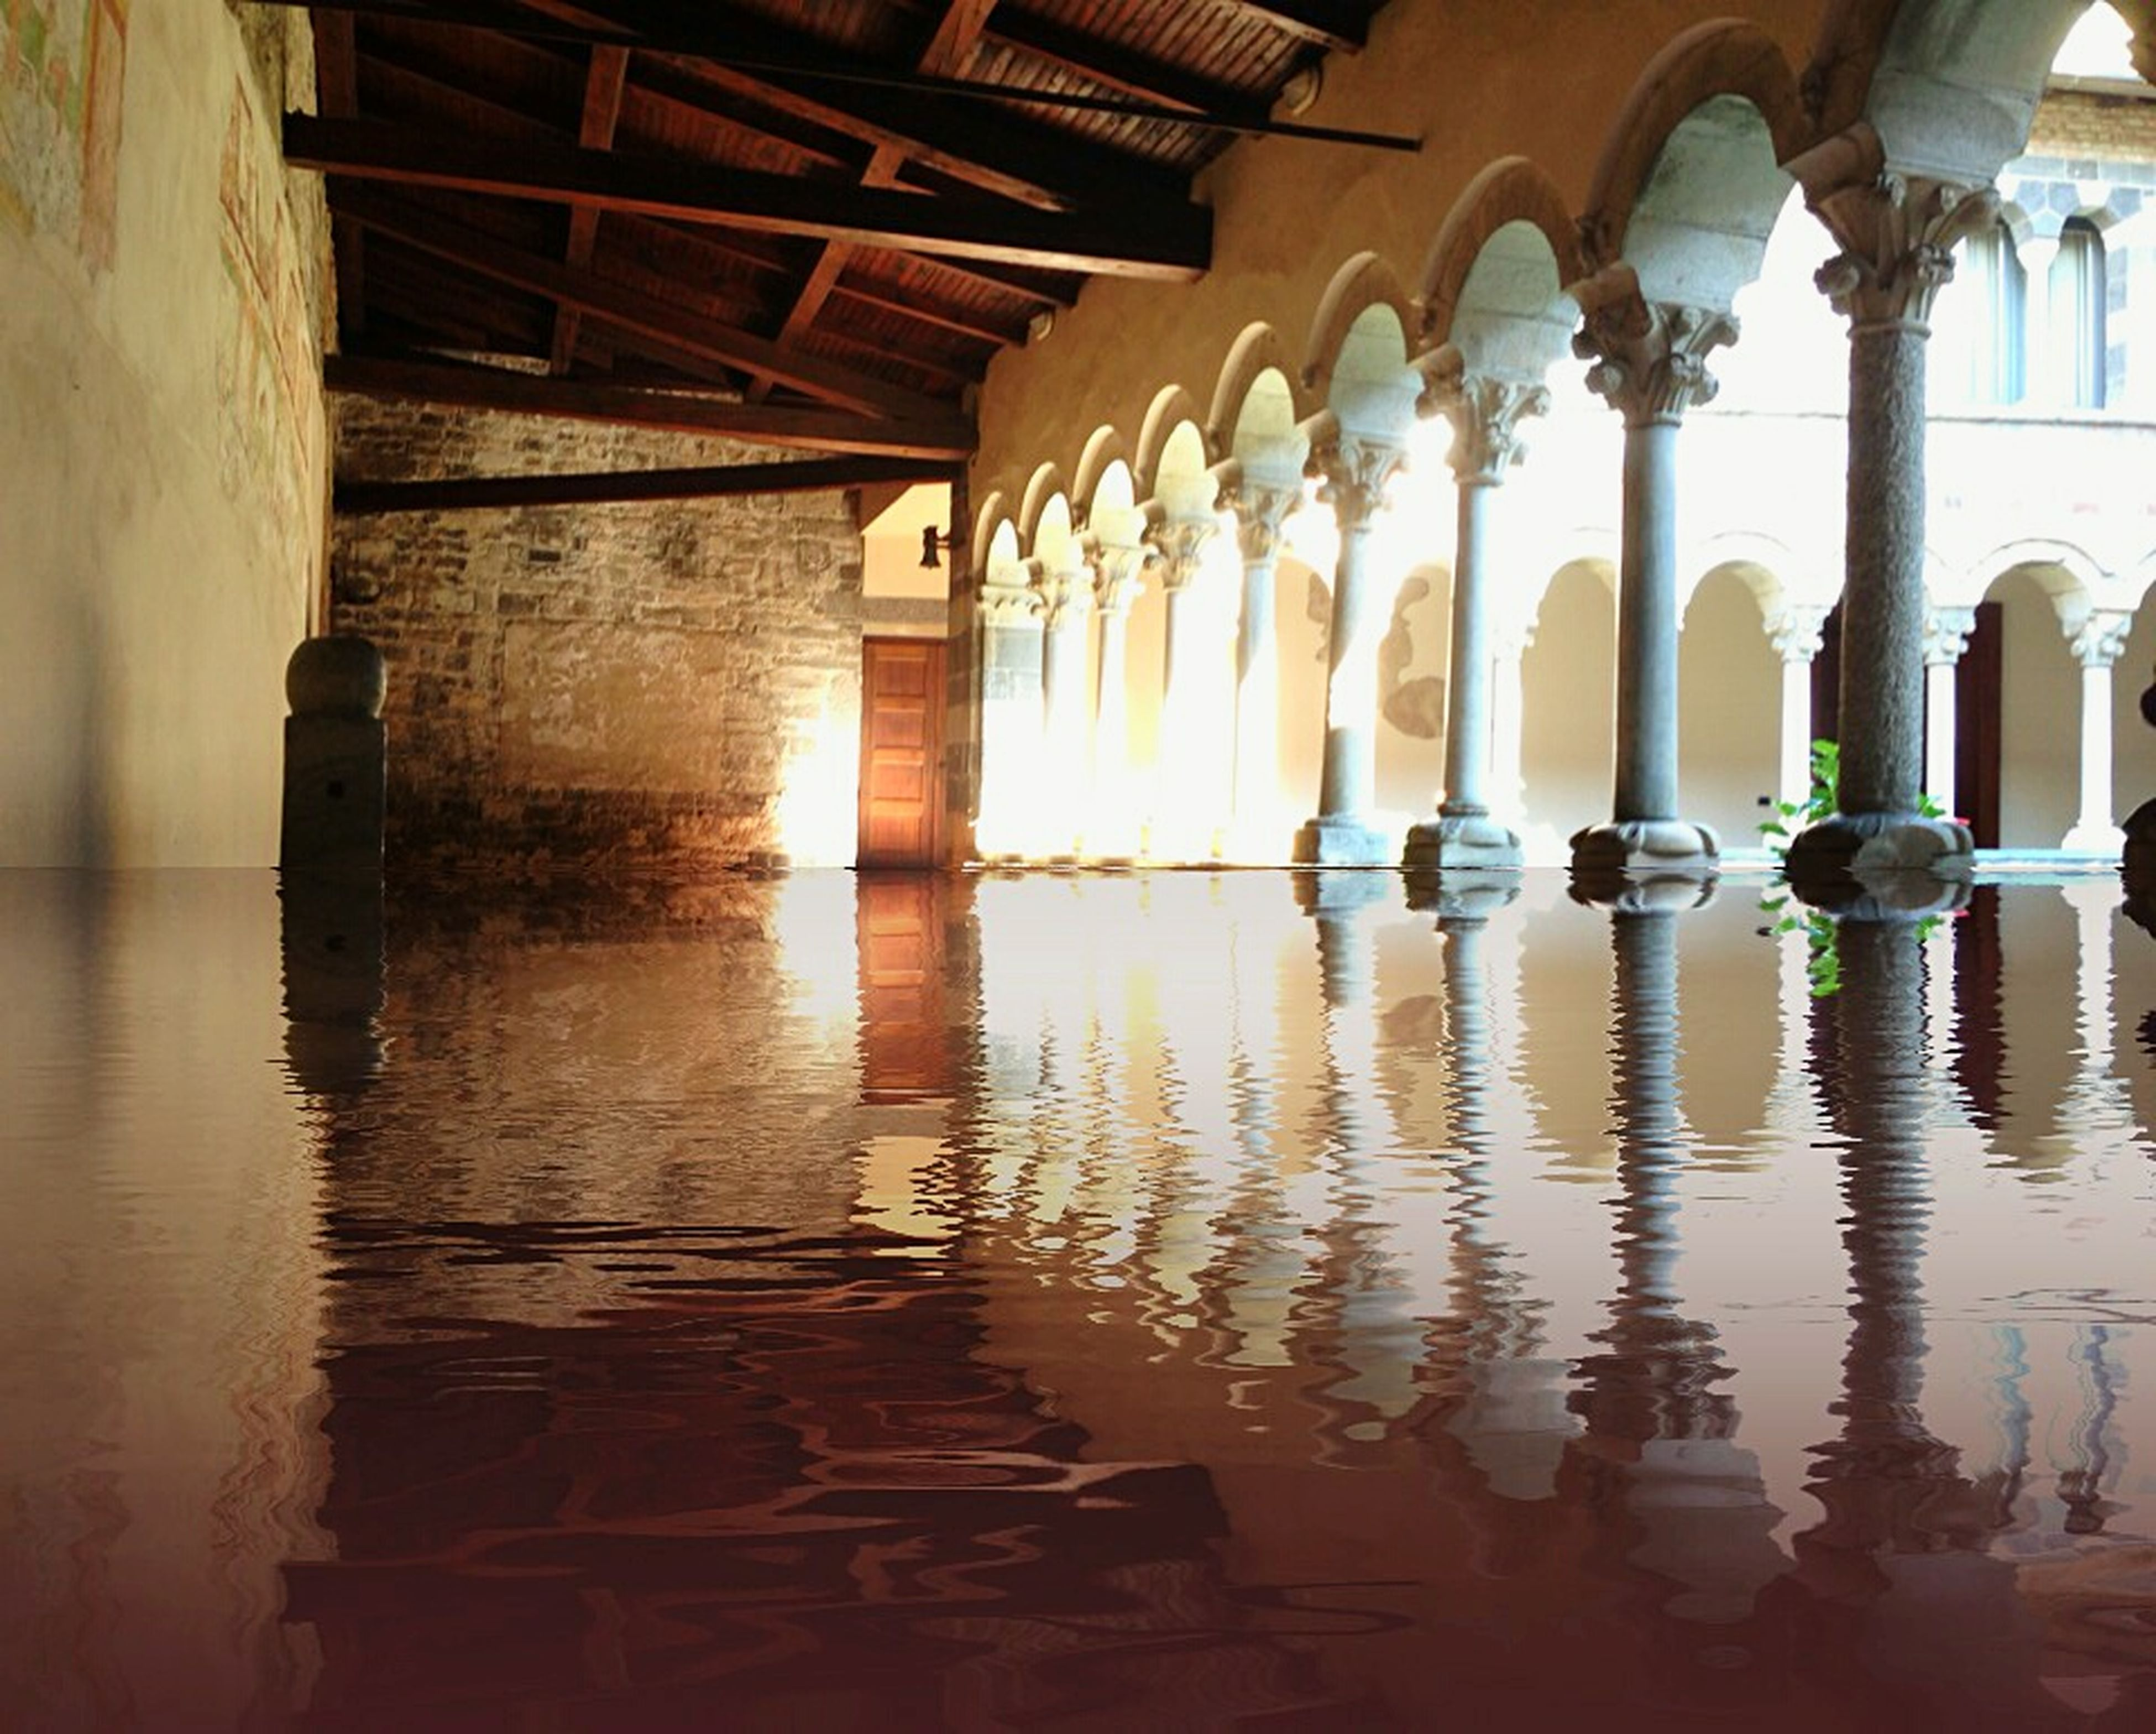 indoors, architecture, built structure, architectural column, arch, in a row, column, reflection, ceiling, water, corridor, interior, below, support, flooring, empty, diminishing perspective, no people, day, colonnade